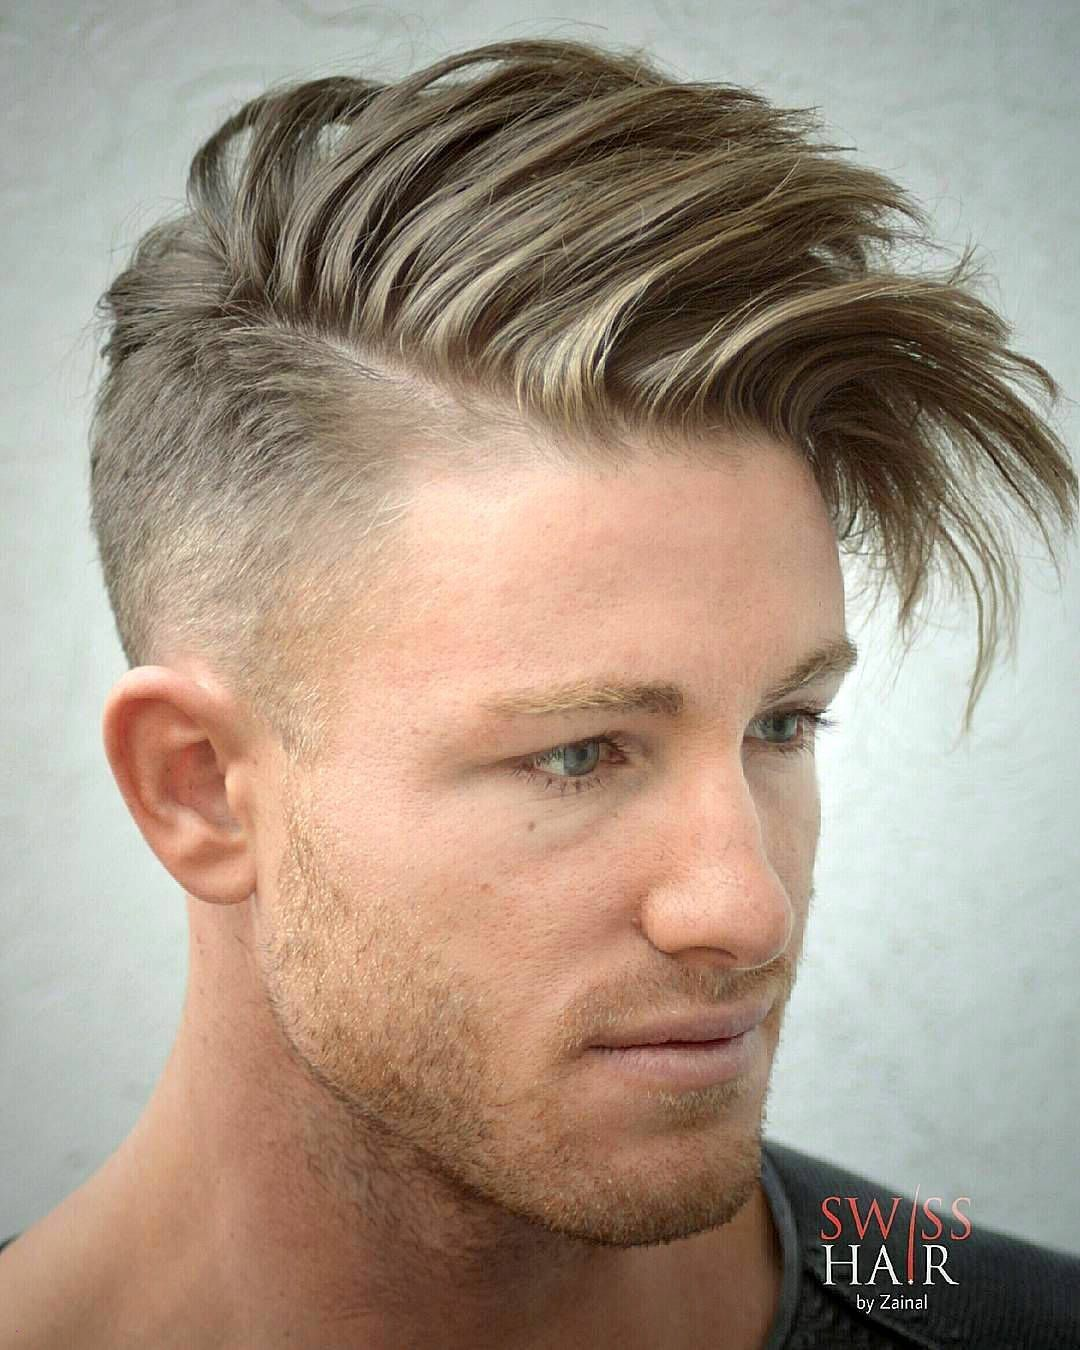 Boy Haircut Shaved Sides Long Top Elegant 49 Men S Hairstyles To Try In 2018 Undercut Haircu Mens Hairstyles Short Sides Long Hair On Top Mens Hairstyles Short